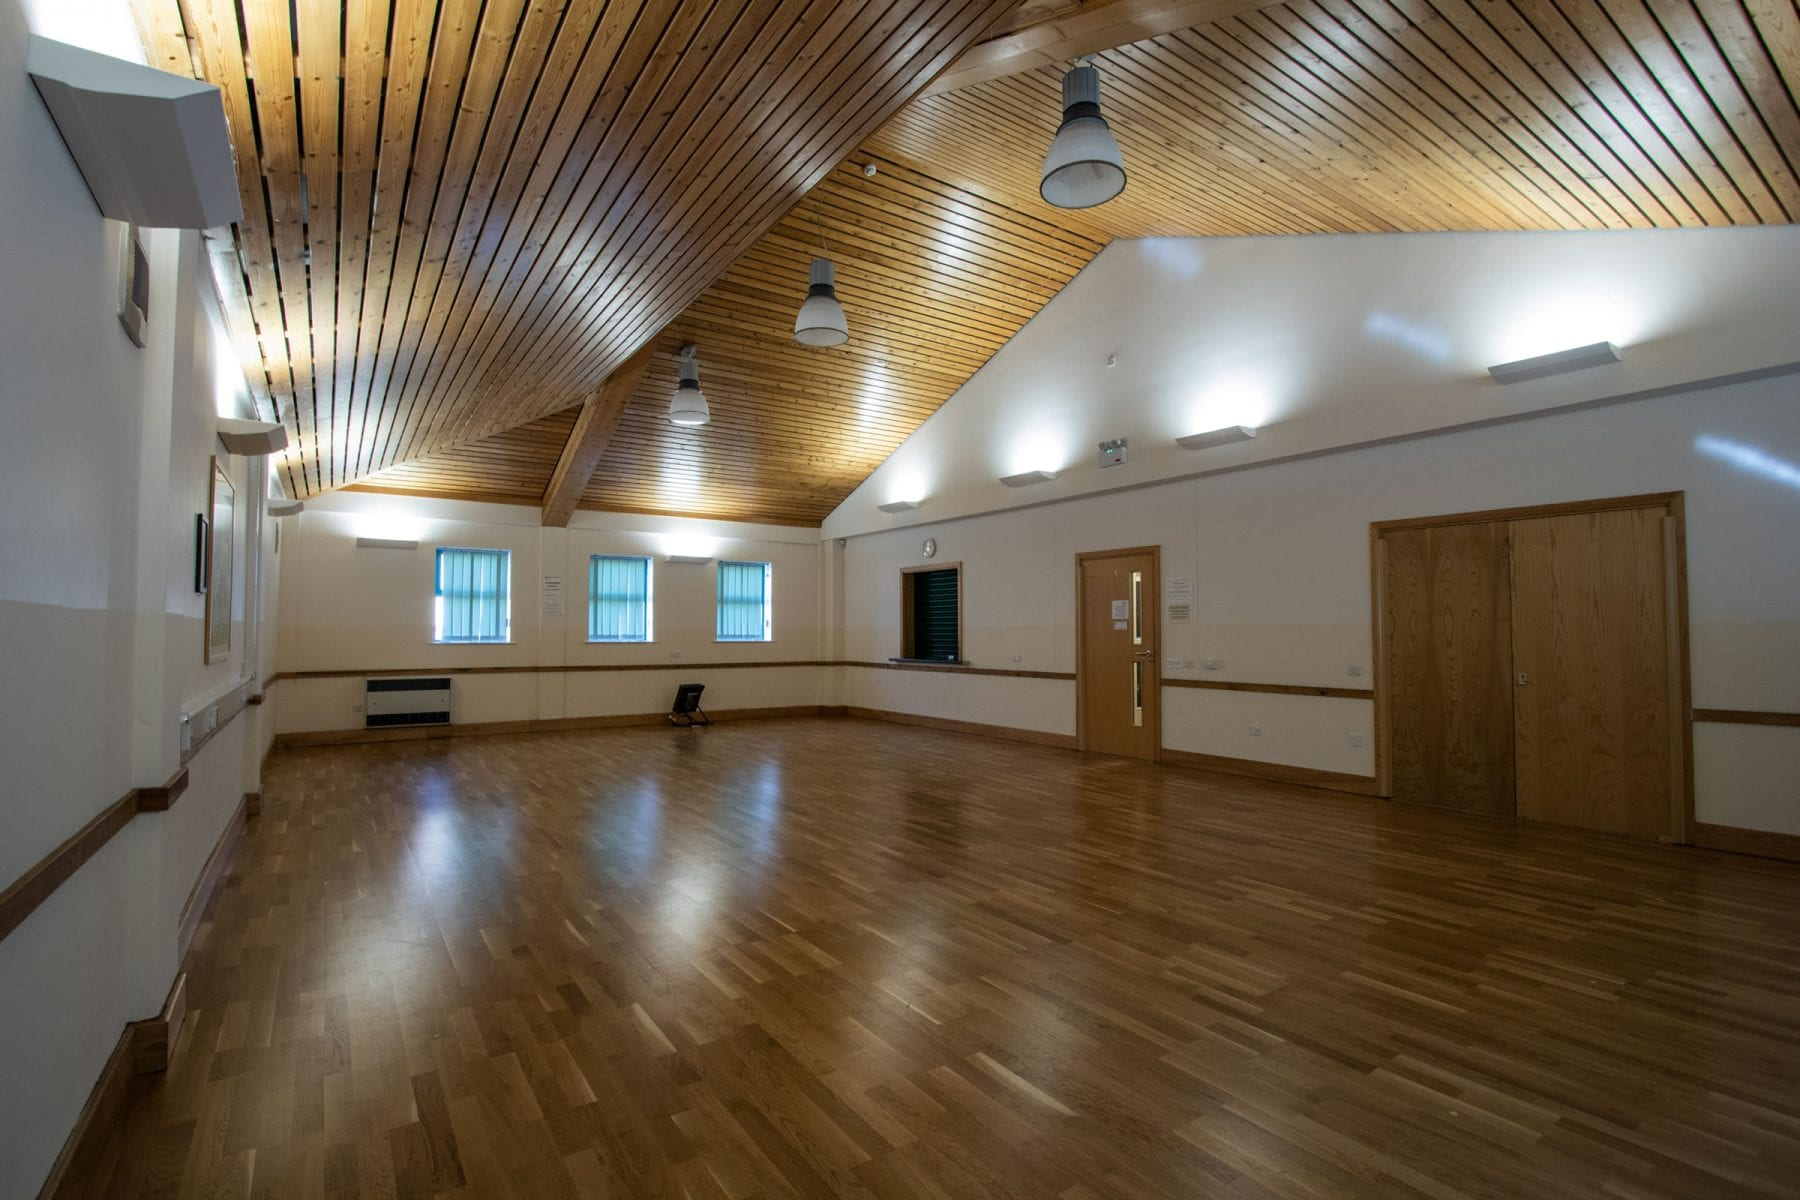 Petuaria Community Centre Main Hall for hire in Brough East Yorkshire